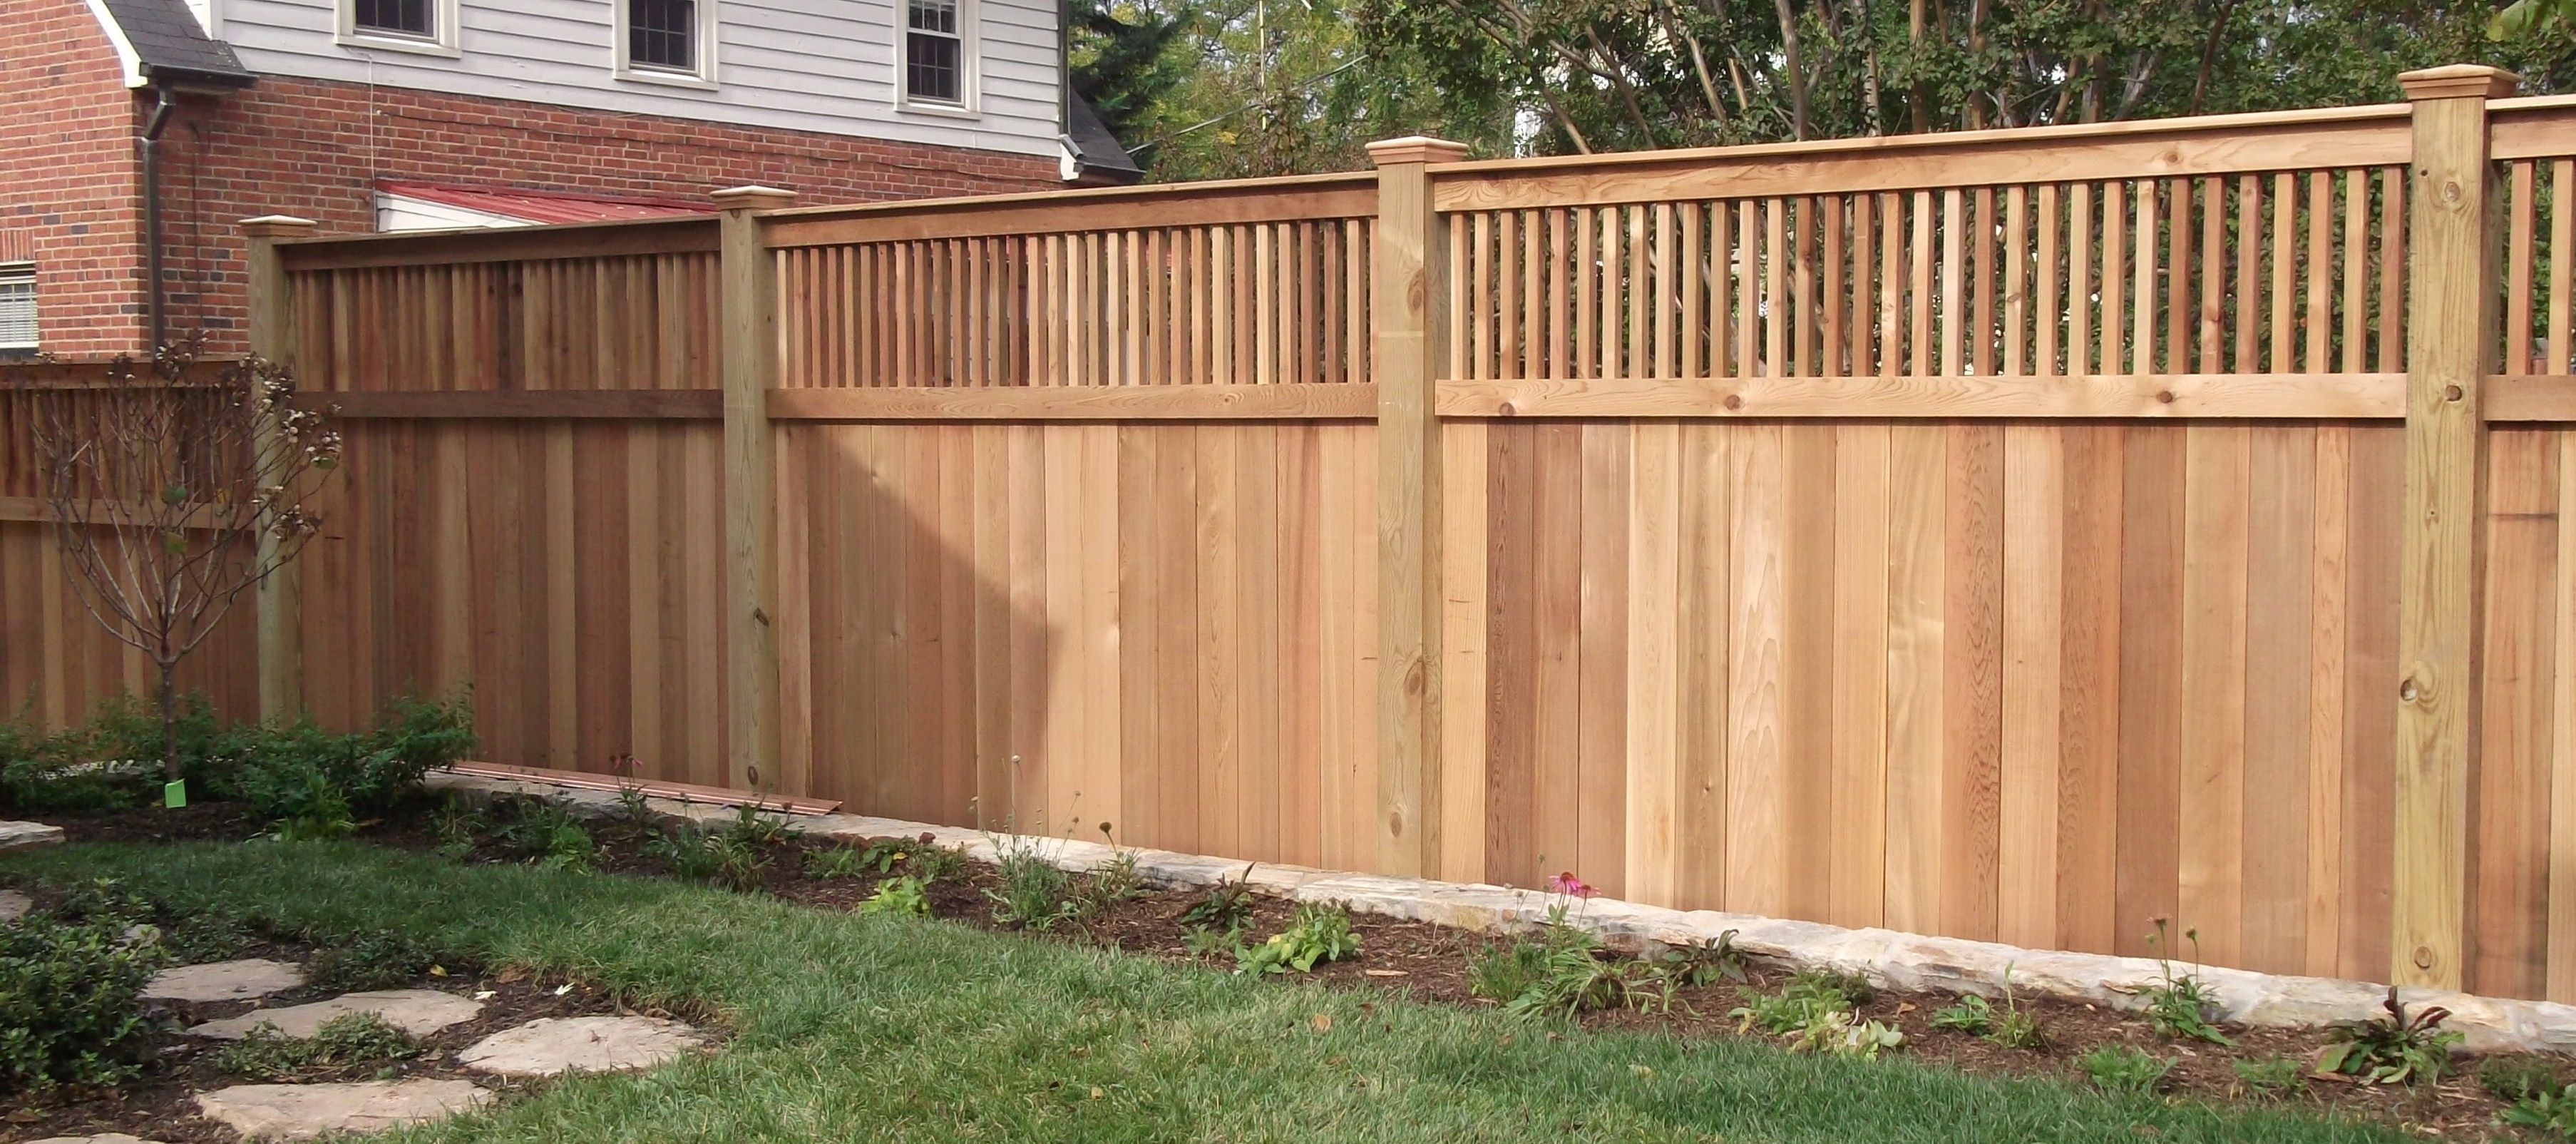 High Resolution Fence Decor 1 Decorating Ideas Newsonair Org Backyard Fences Wood Fence Design Fence Design